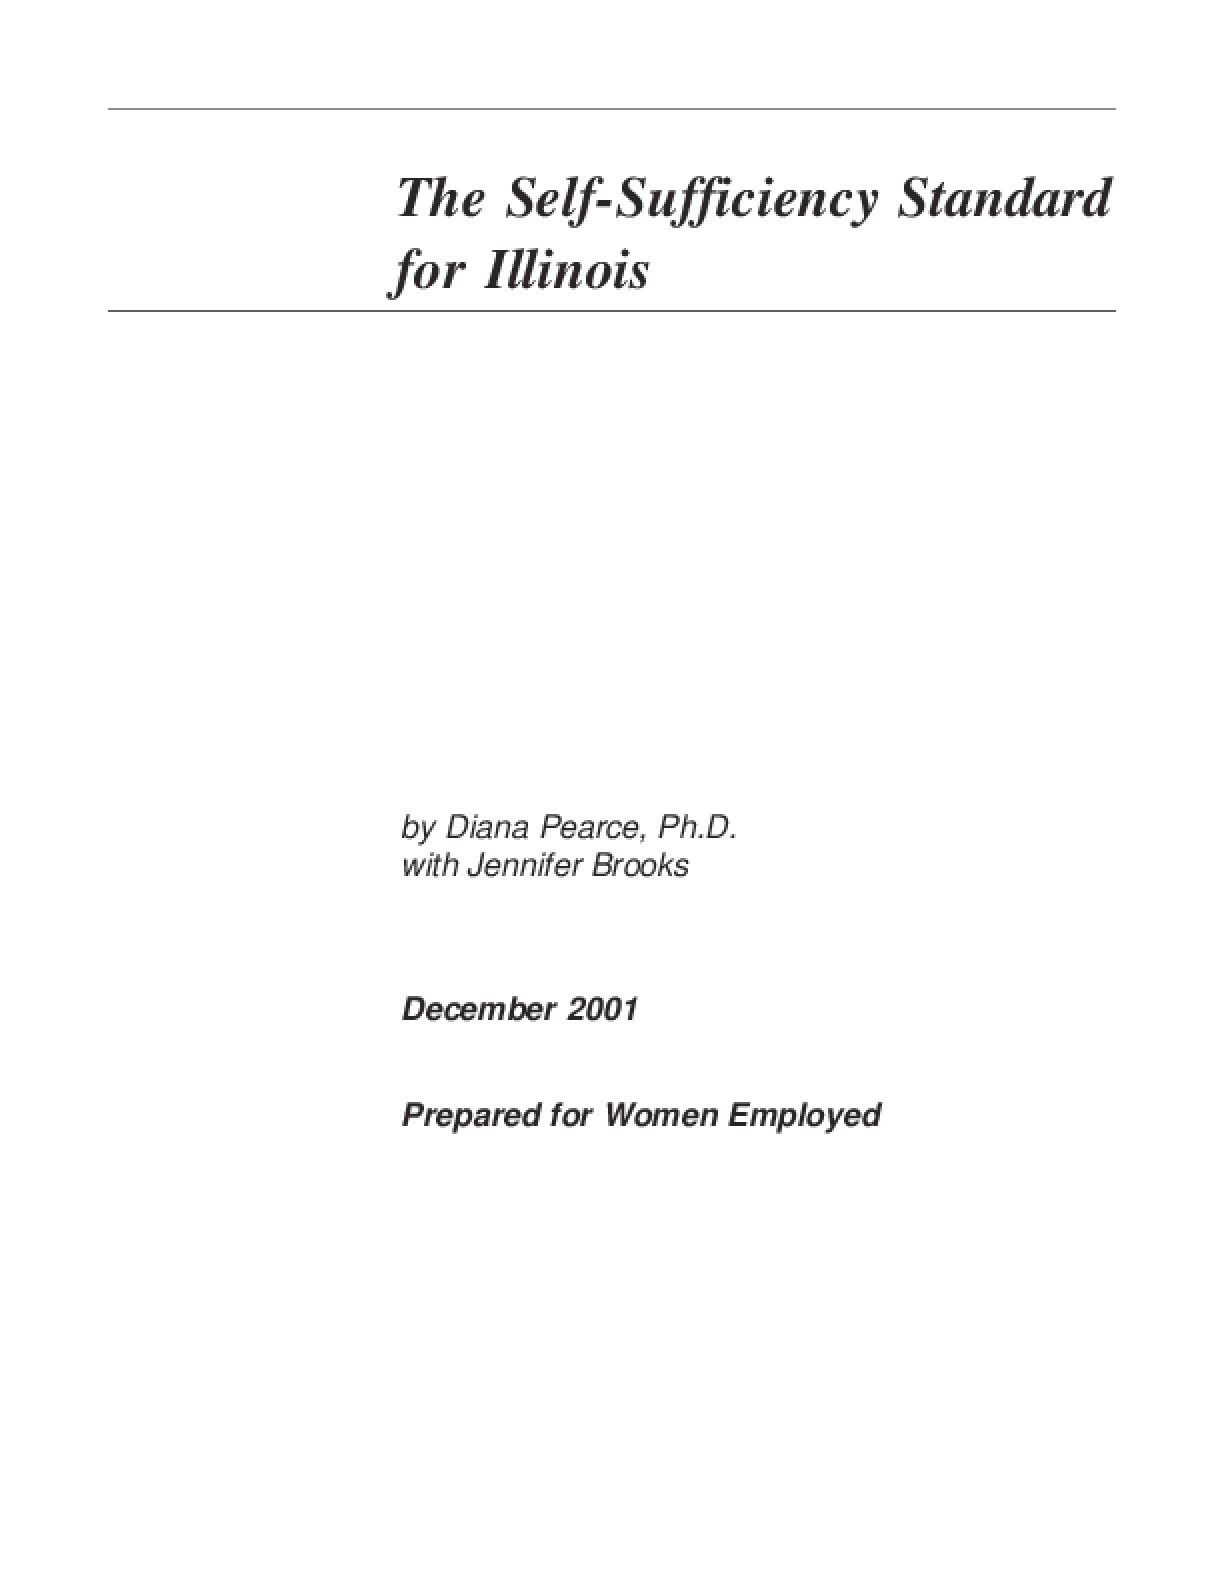 The Self-Sufficiency Standard for Illinois